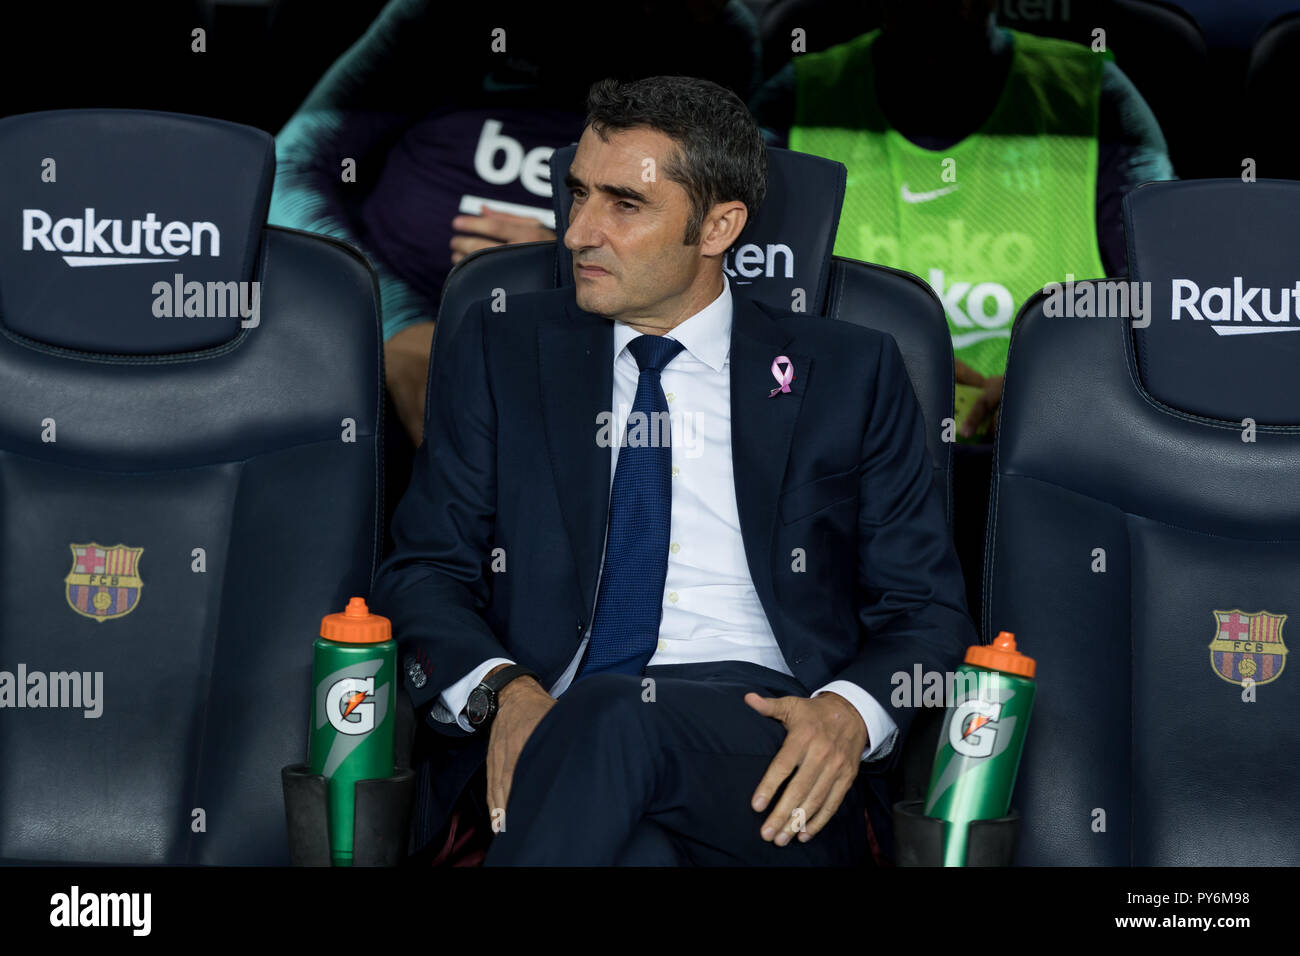 October 20th; Ernesto Valverde of FC Barcelona during the 2018/2019 LaLiga Santander Round 8 game between FC Barcelona and Sevilla FC at Camp Nou on O - Stock Image